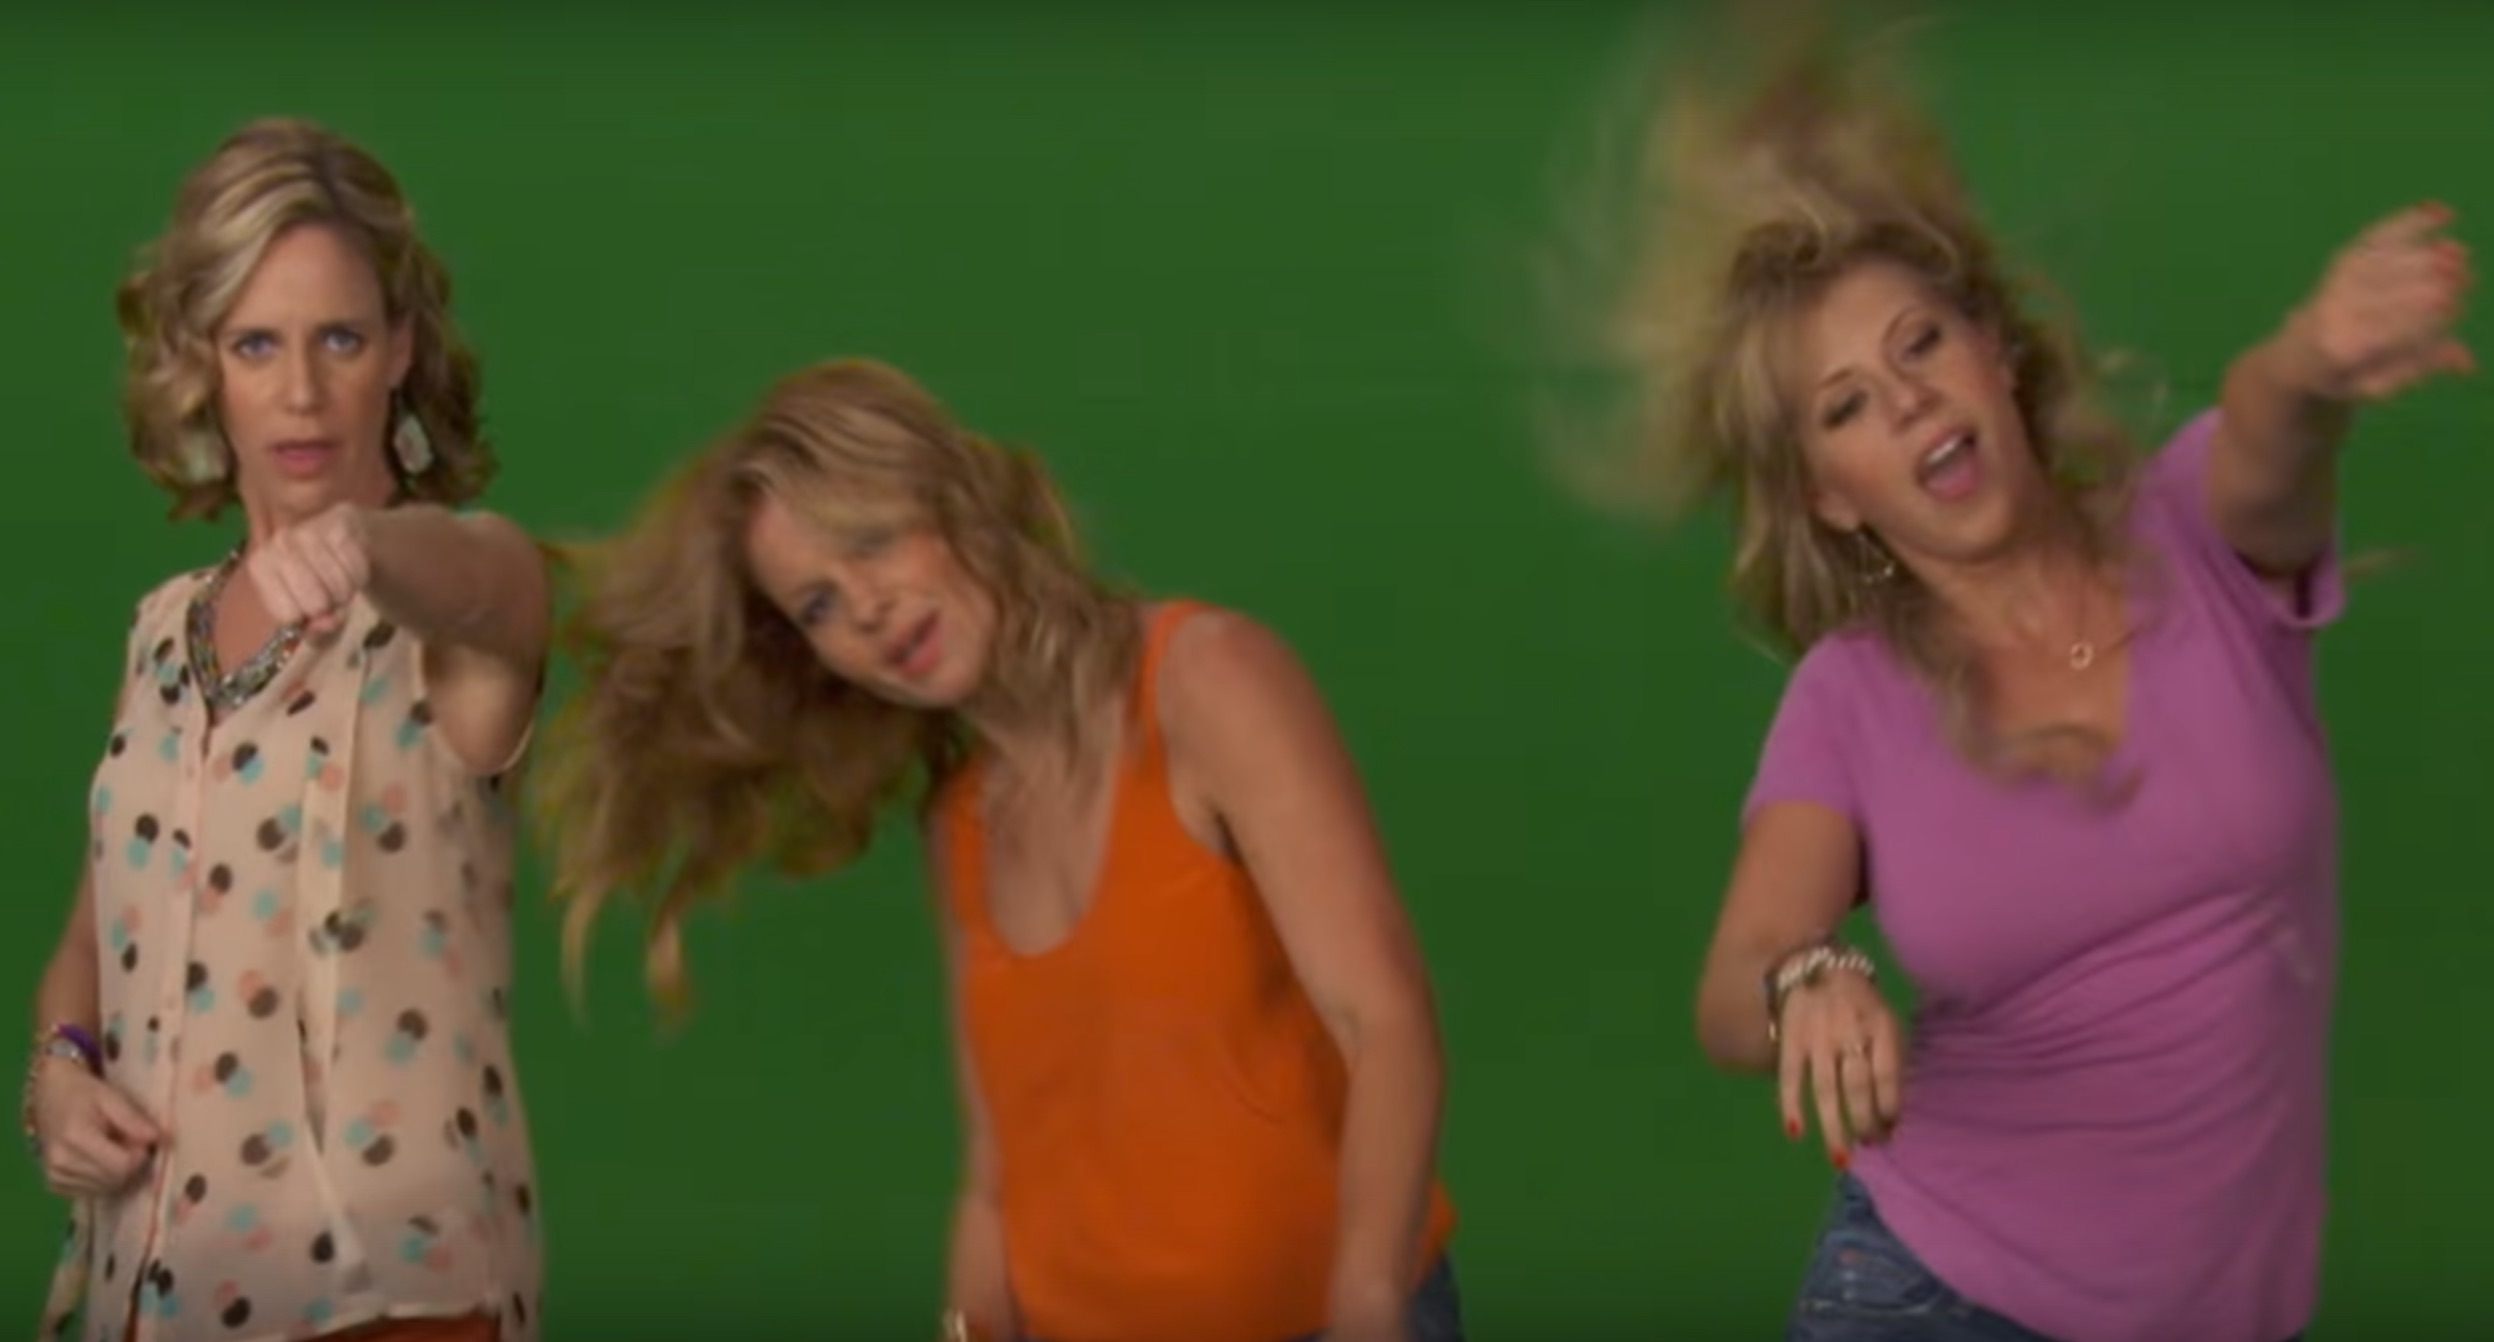 Watch the cast of 'Fuller House' Whip and Nae Nae in this new promo